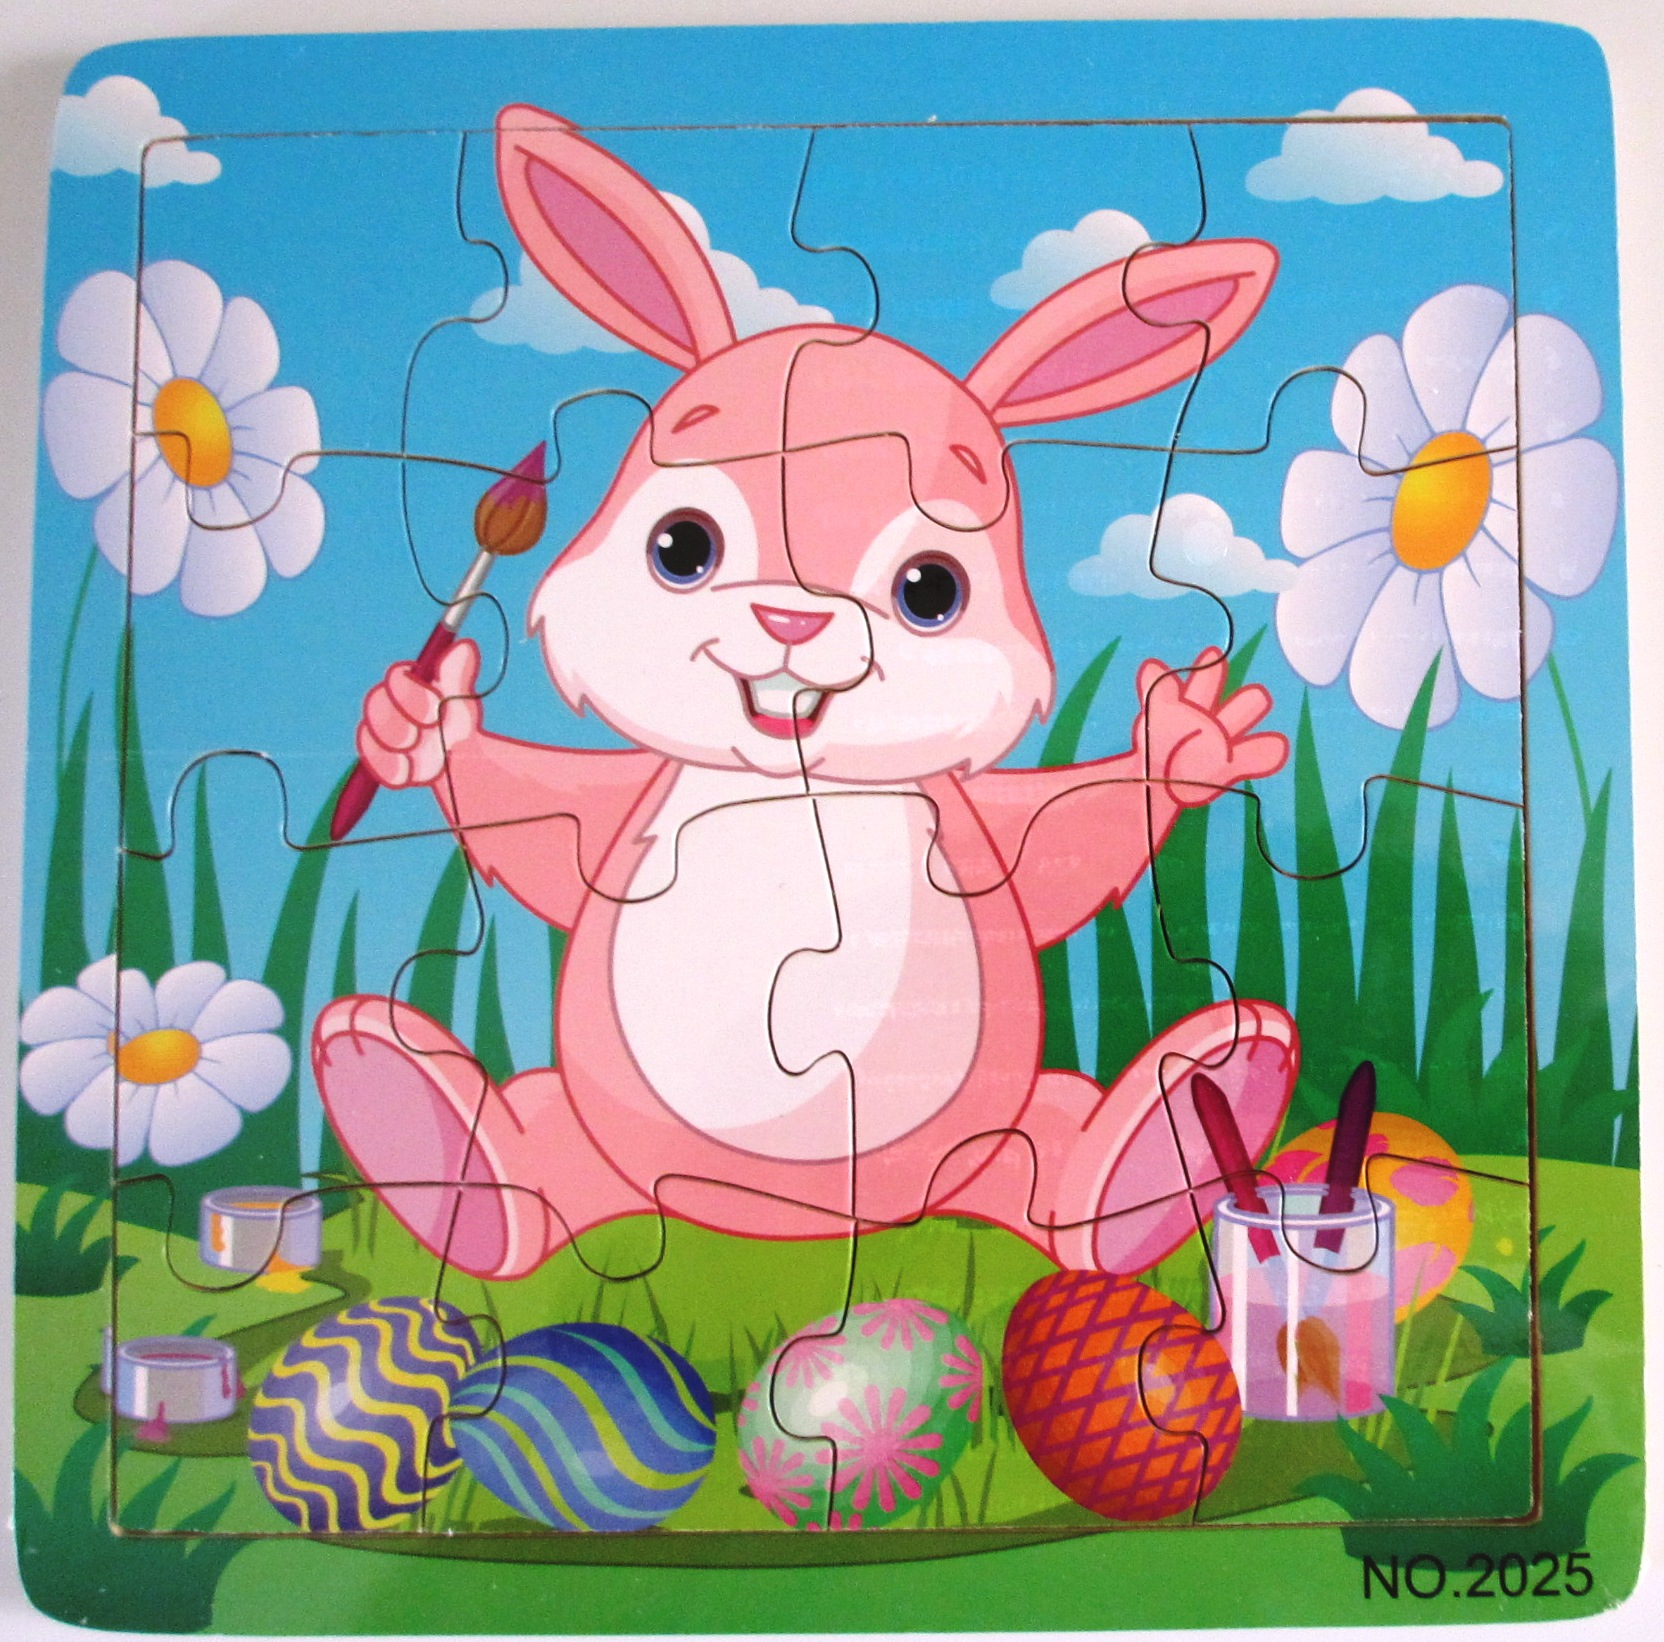 Rabbit wooden jigsaw puzzle